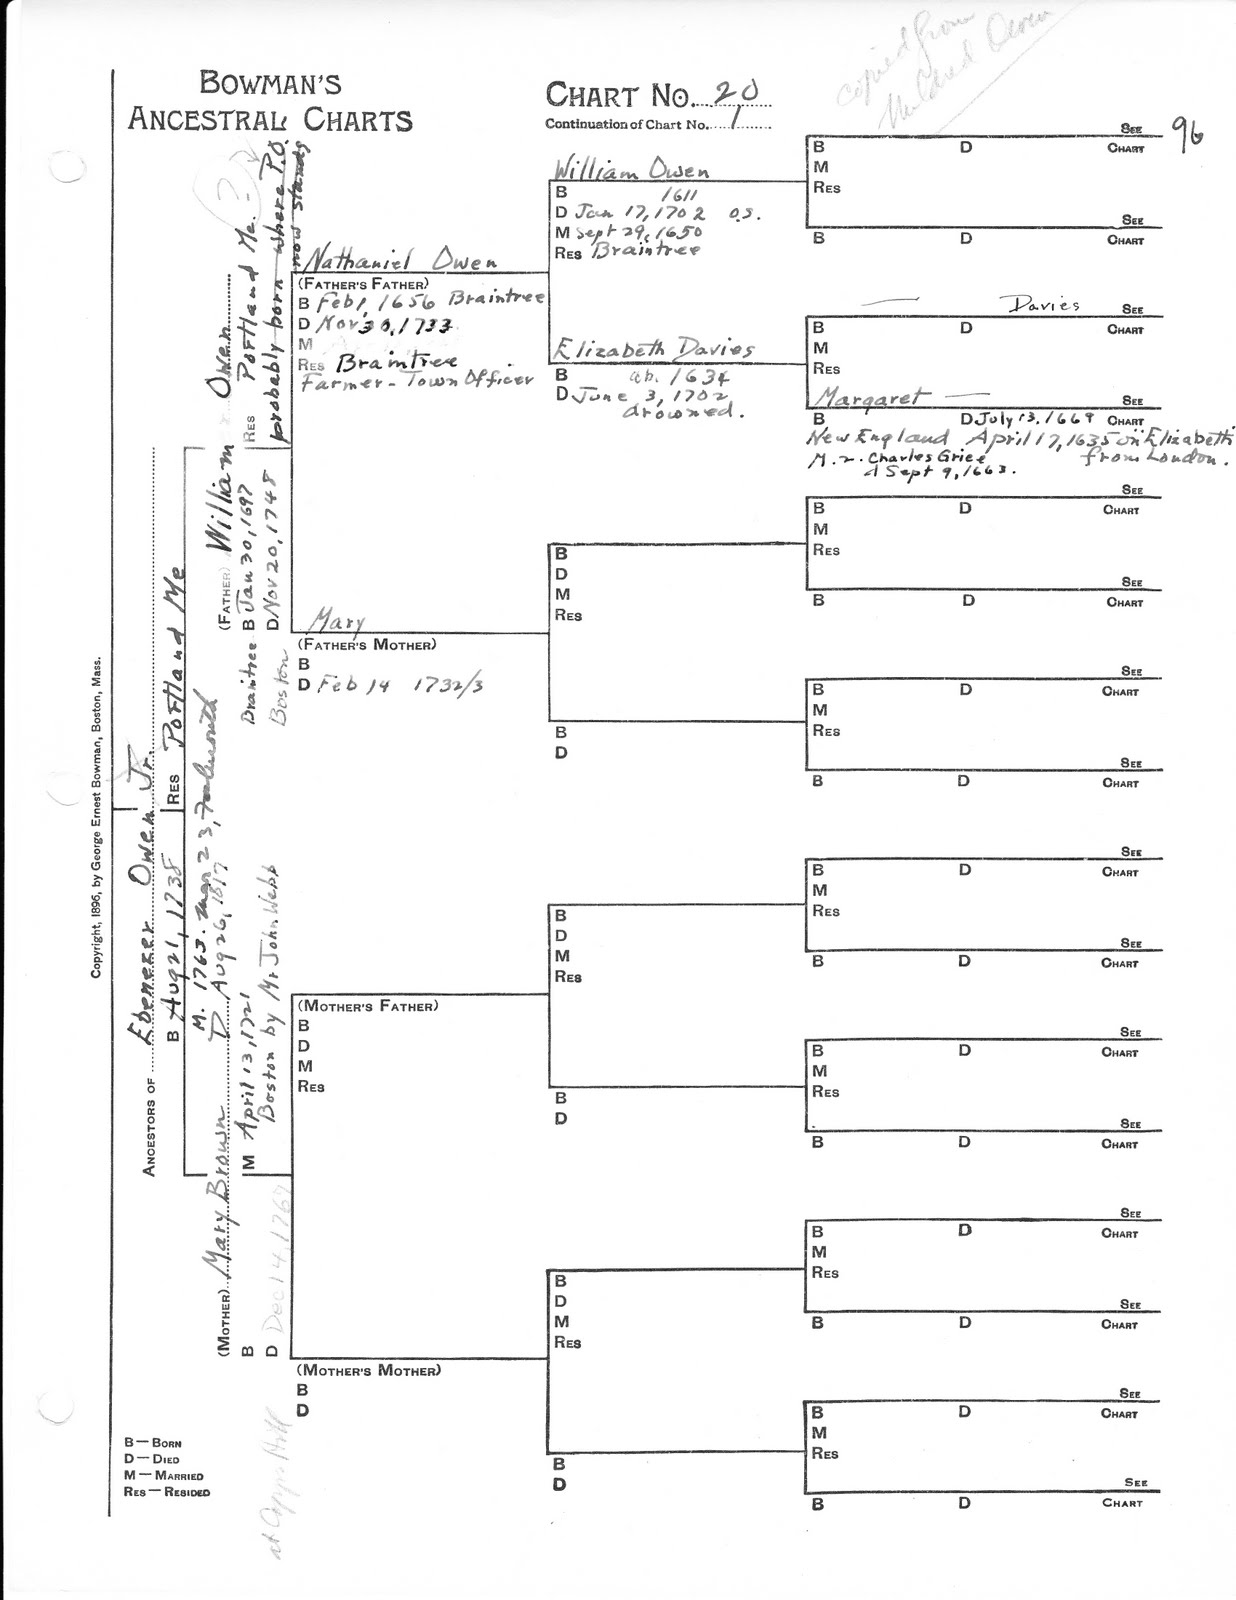 will s genealogy blog merrill haskell ancestral chart no 20